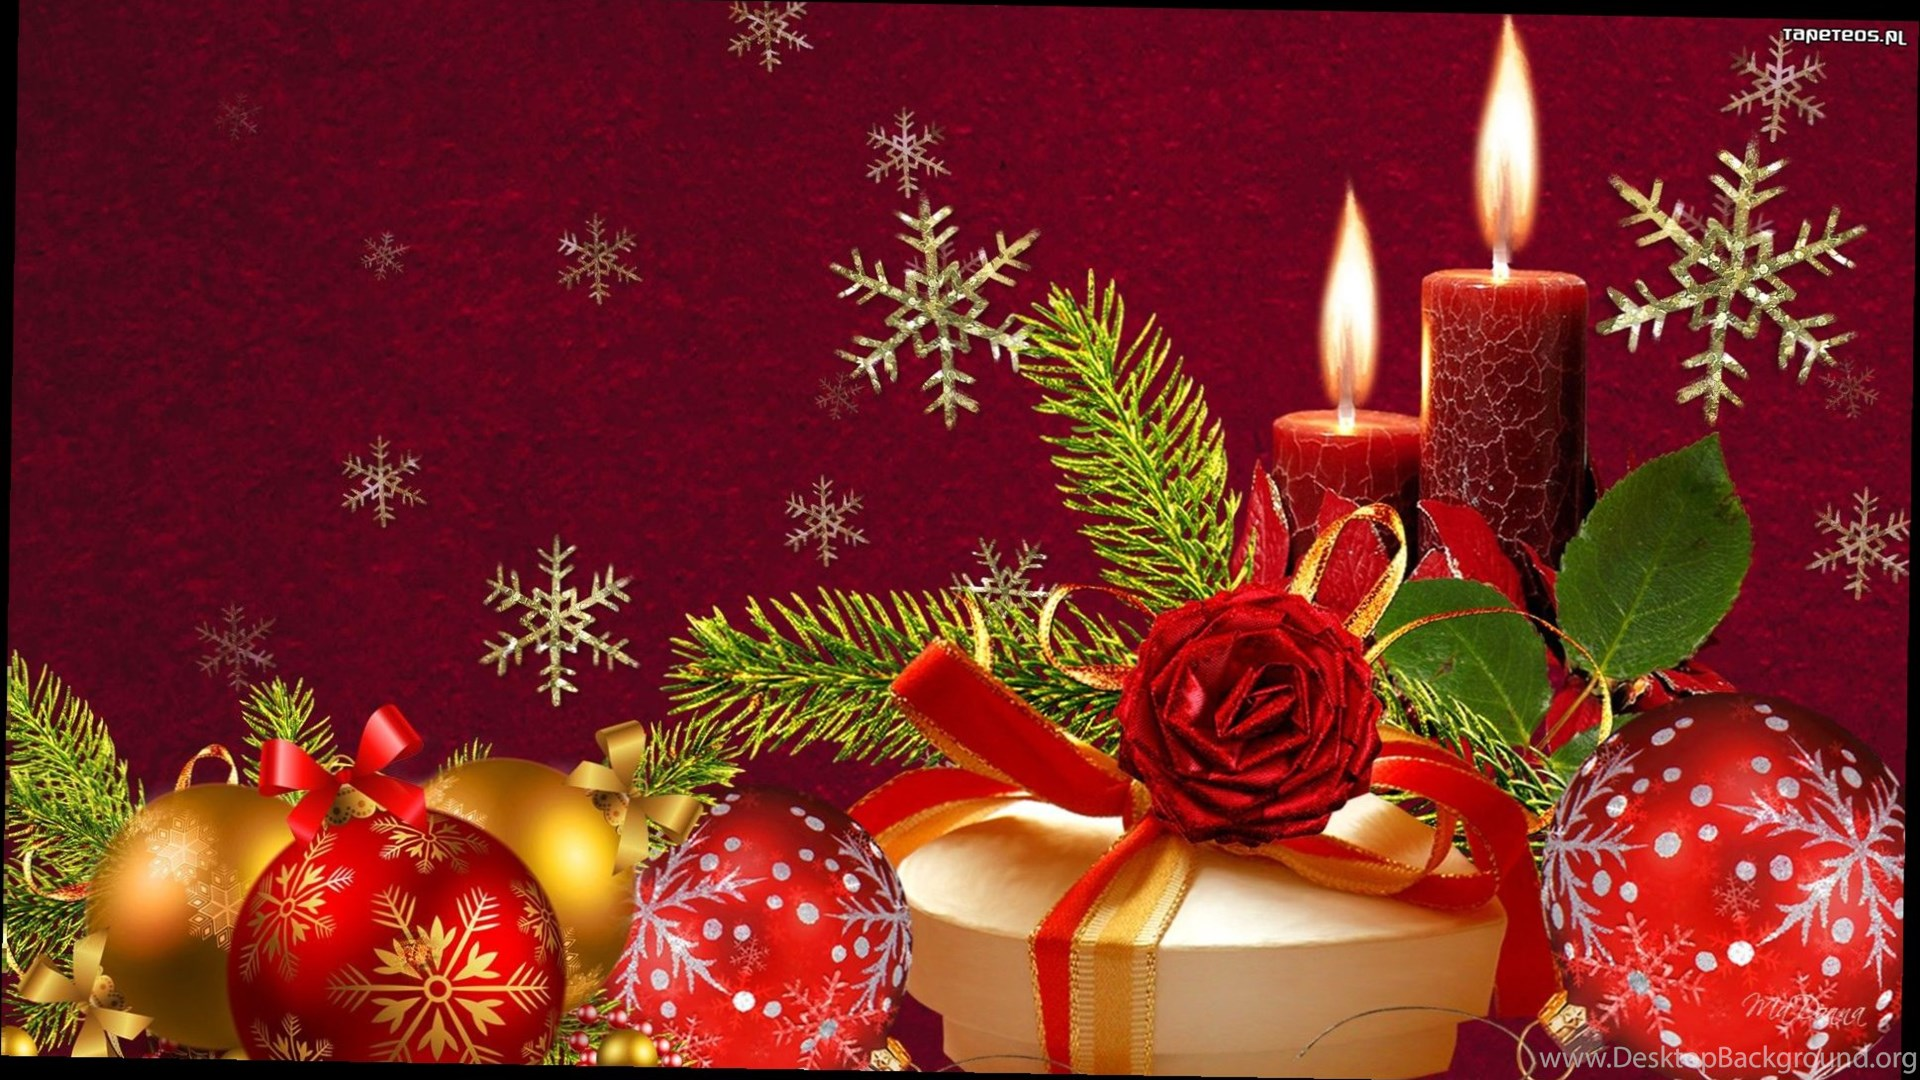 christmas backgrounds wallpapers computer 3 items desktop background